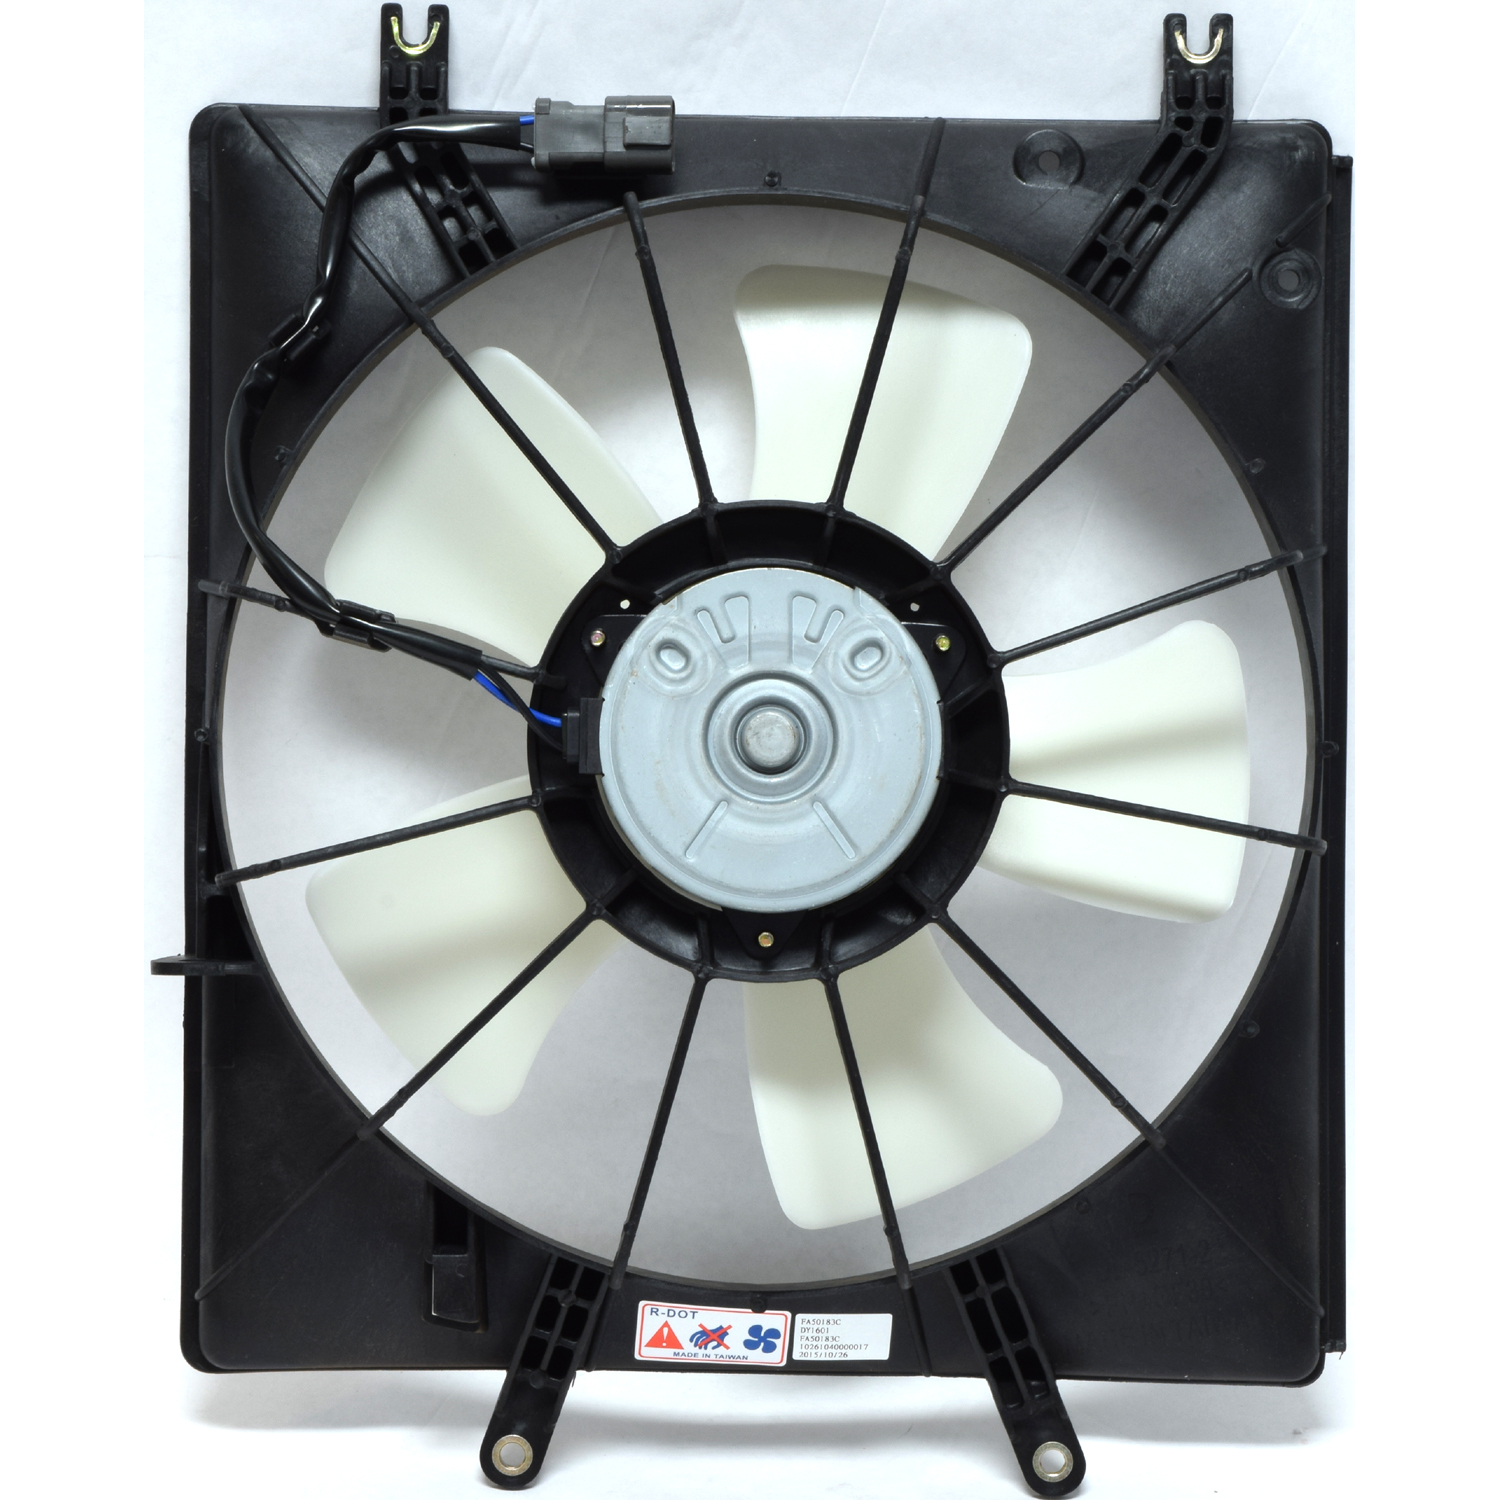 New Engine Cooling Fan Assembly 1680034 - 19020P8FA01 TL